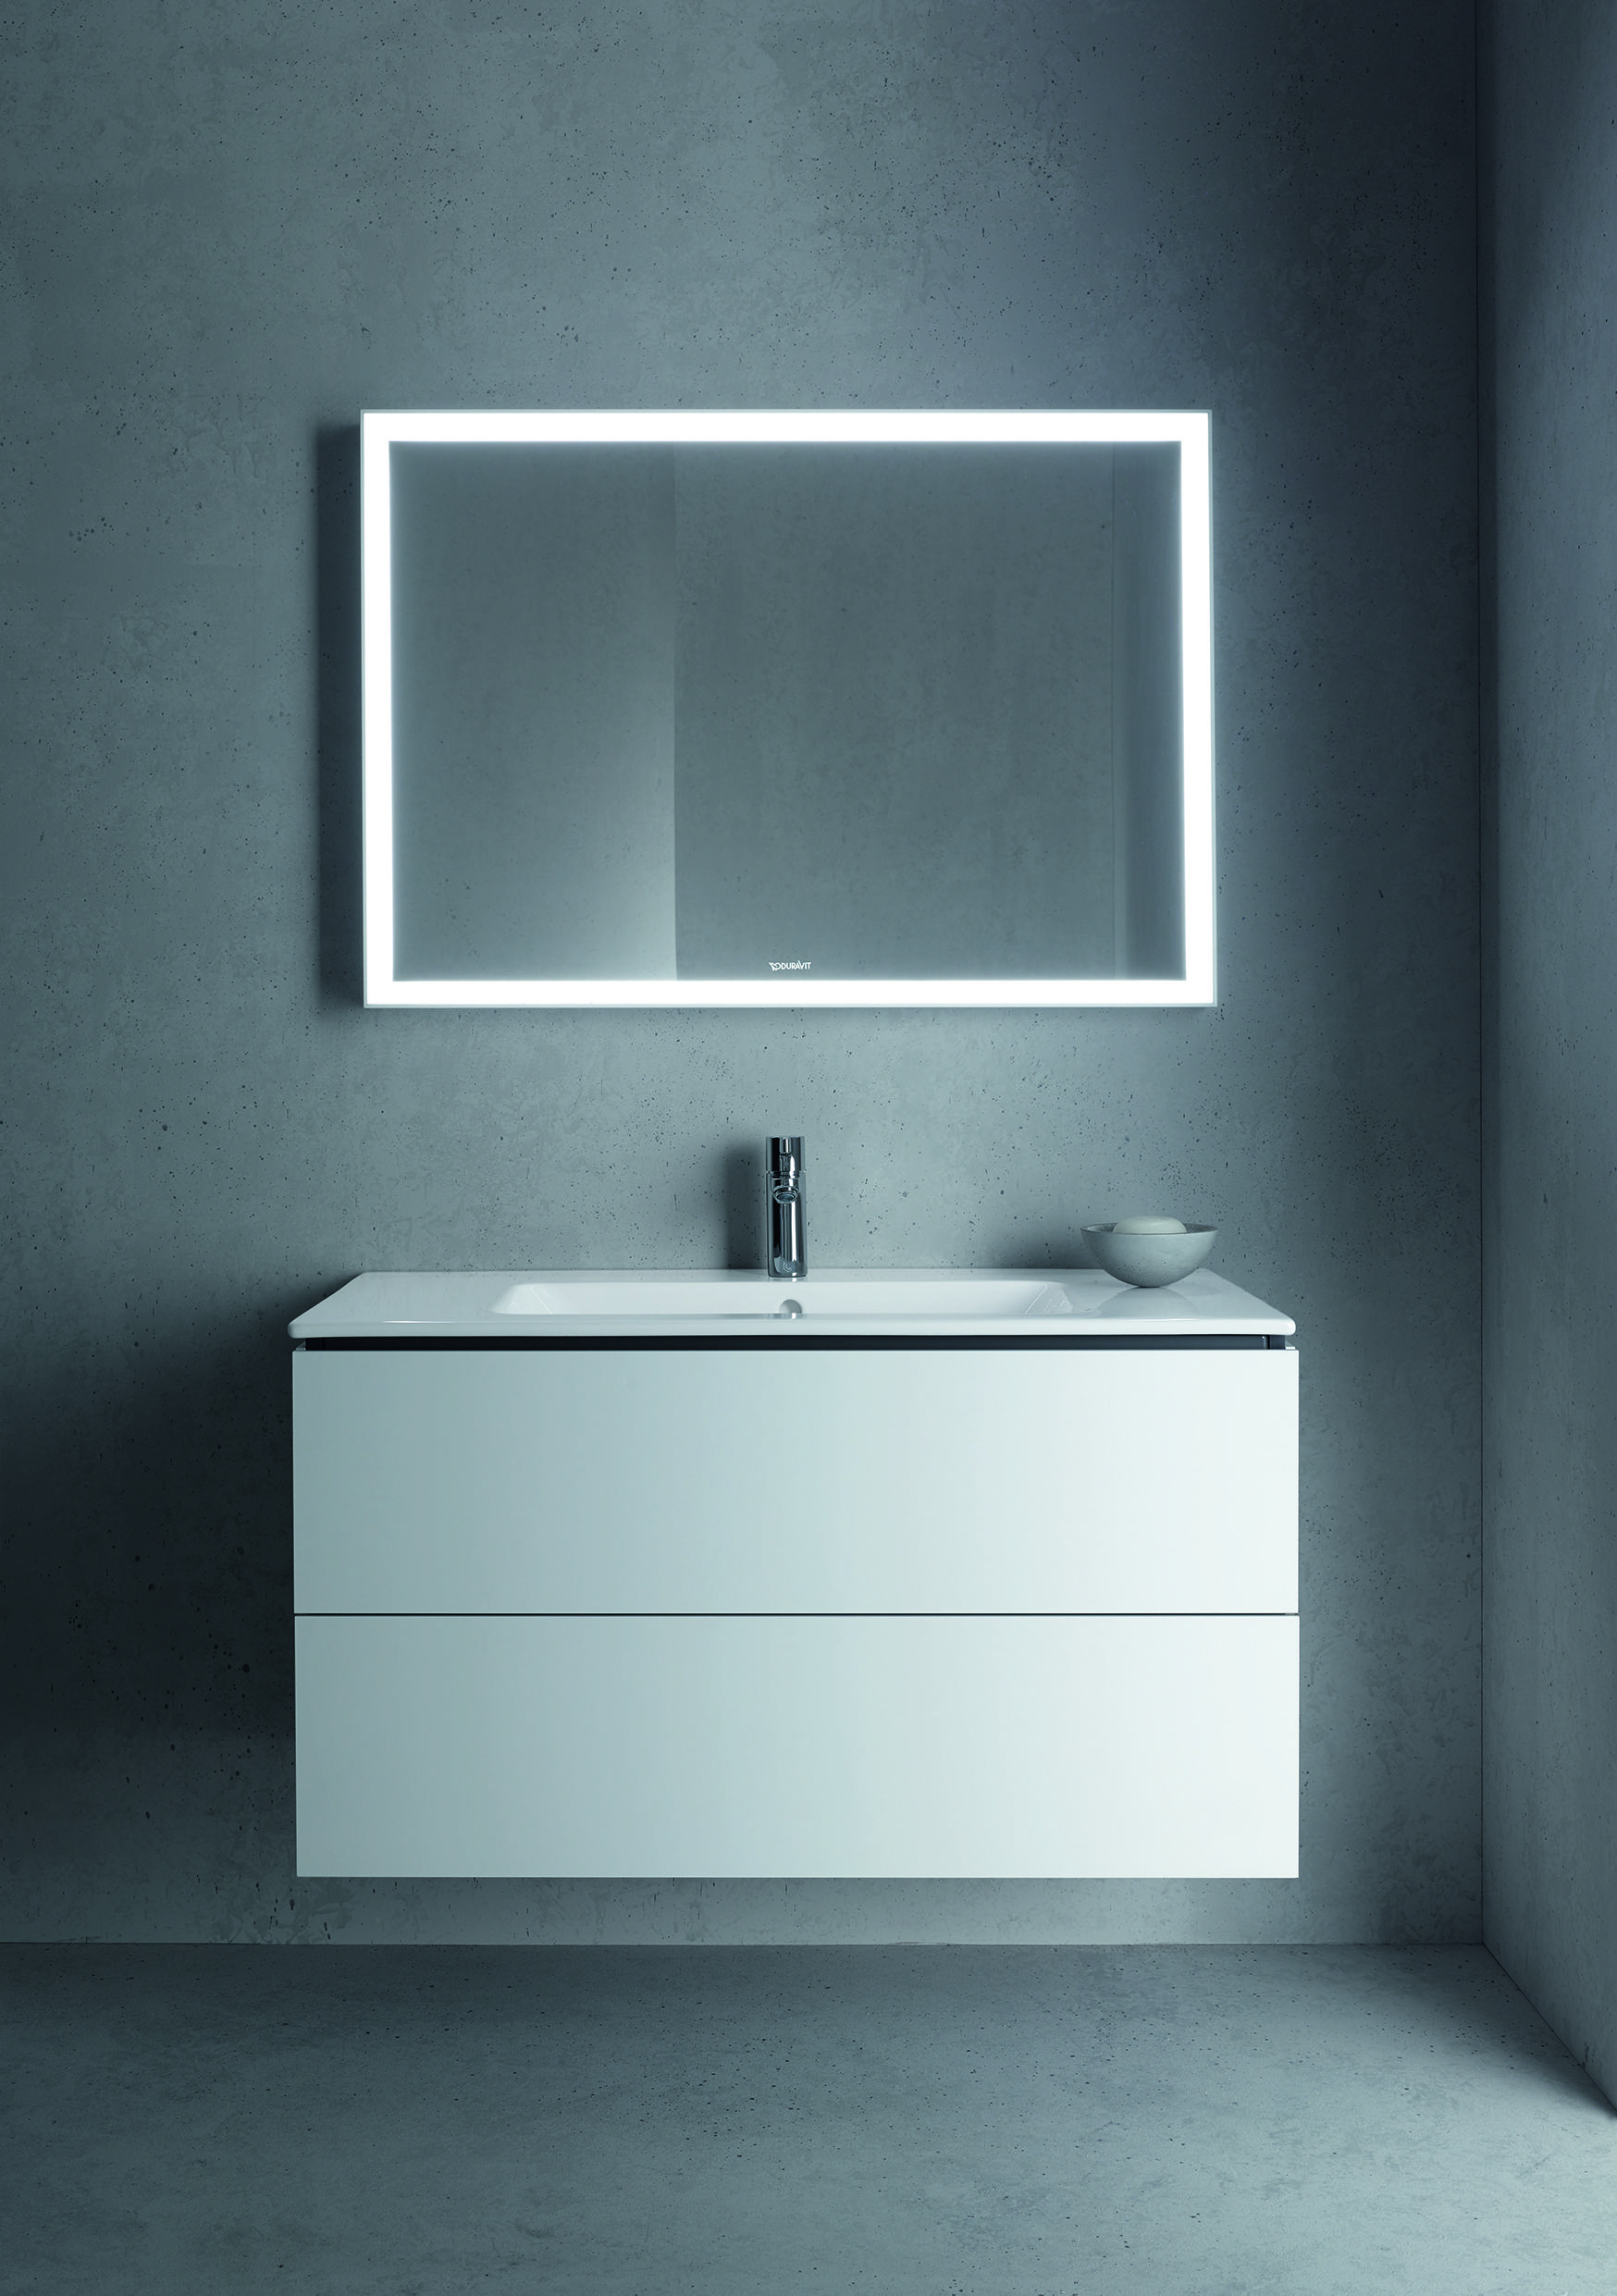 Duravit Waschtischunterschrank Me Rectangular Washbasin Bathrooms Bathroom Duravit